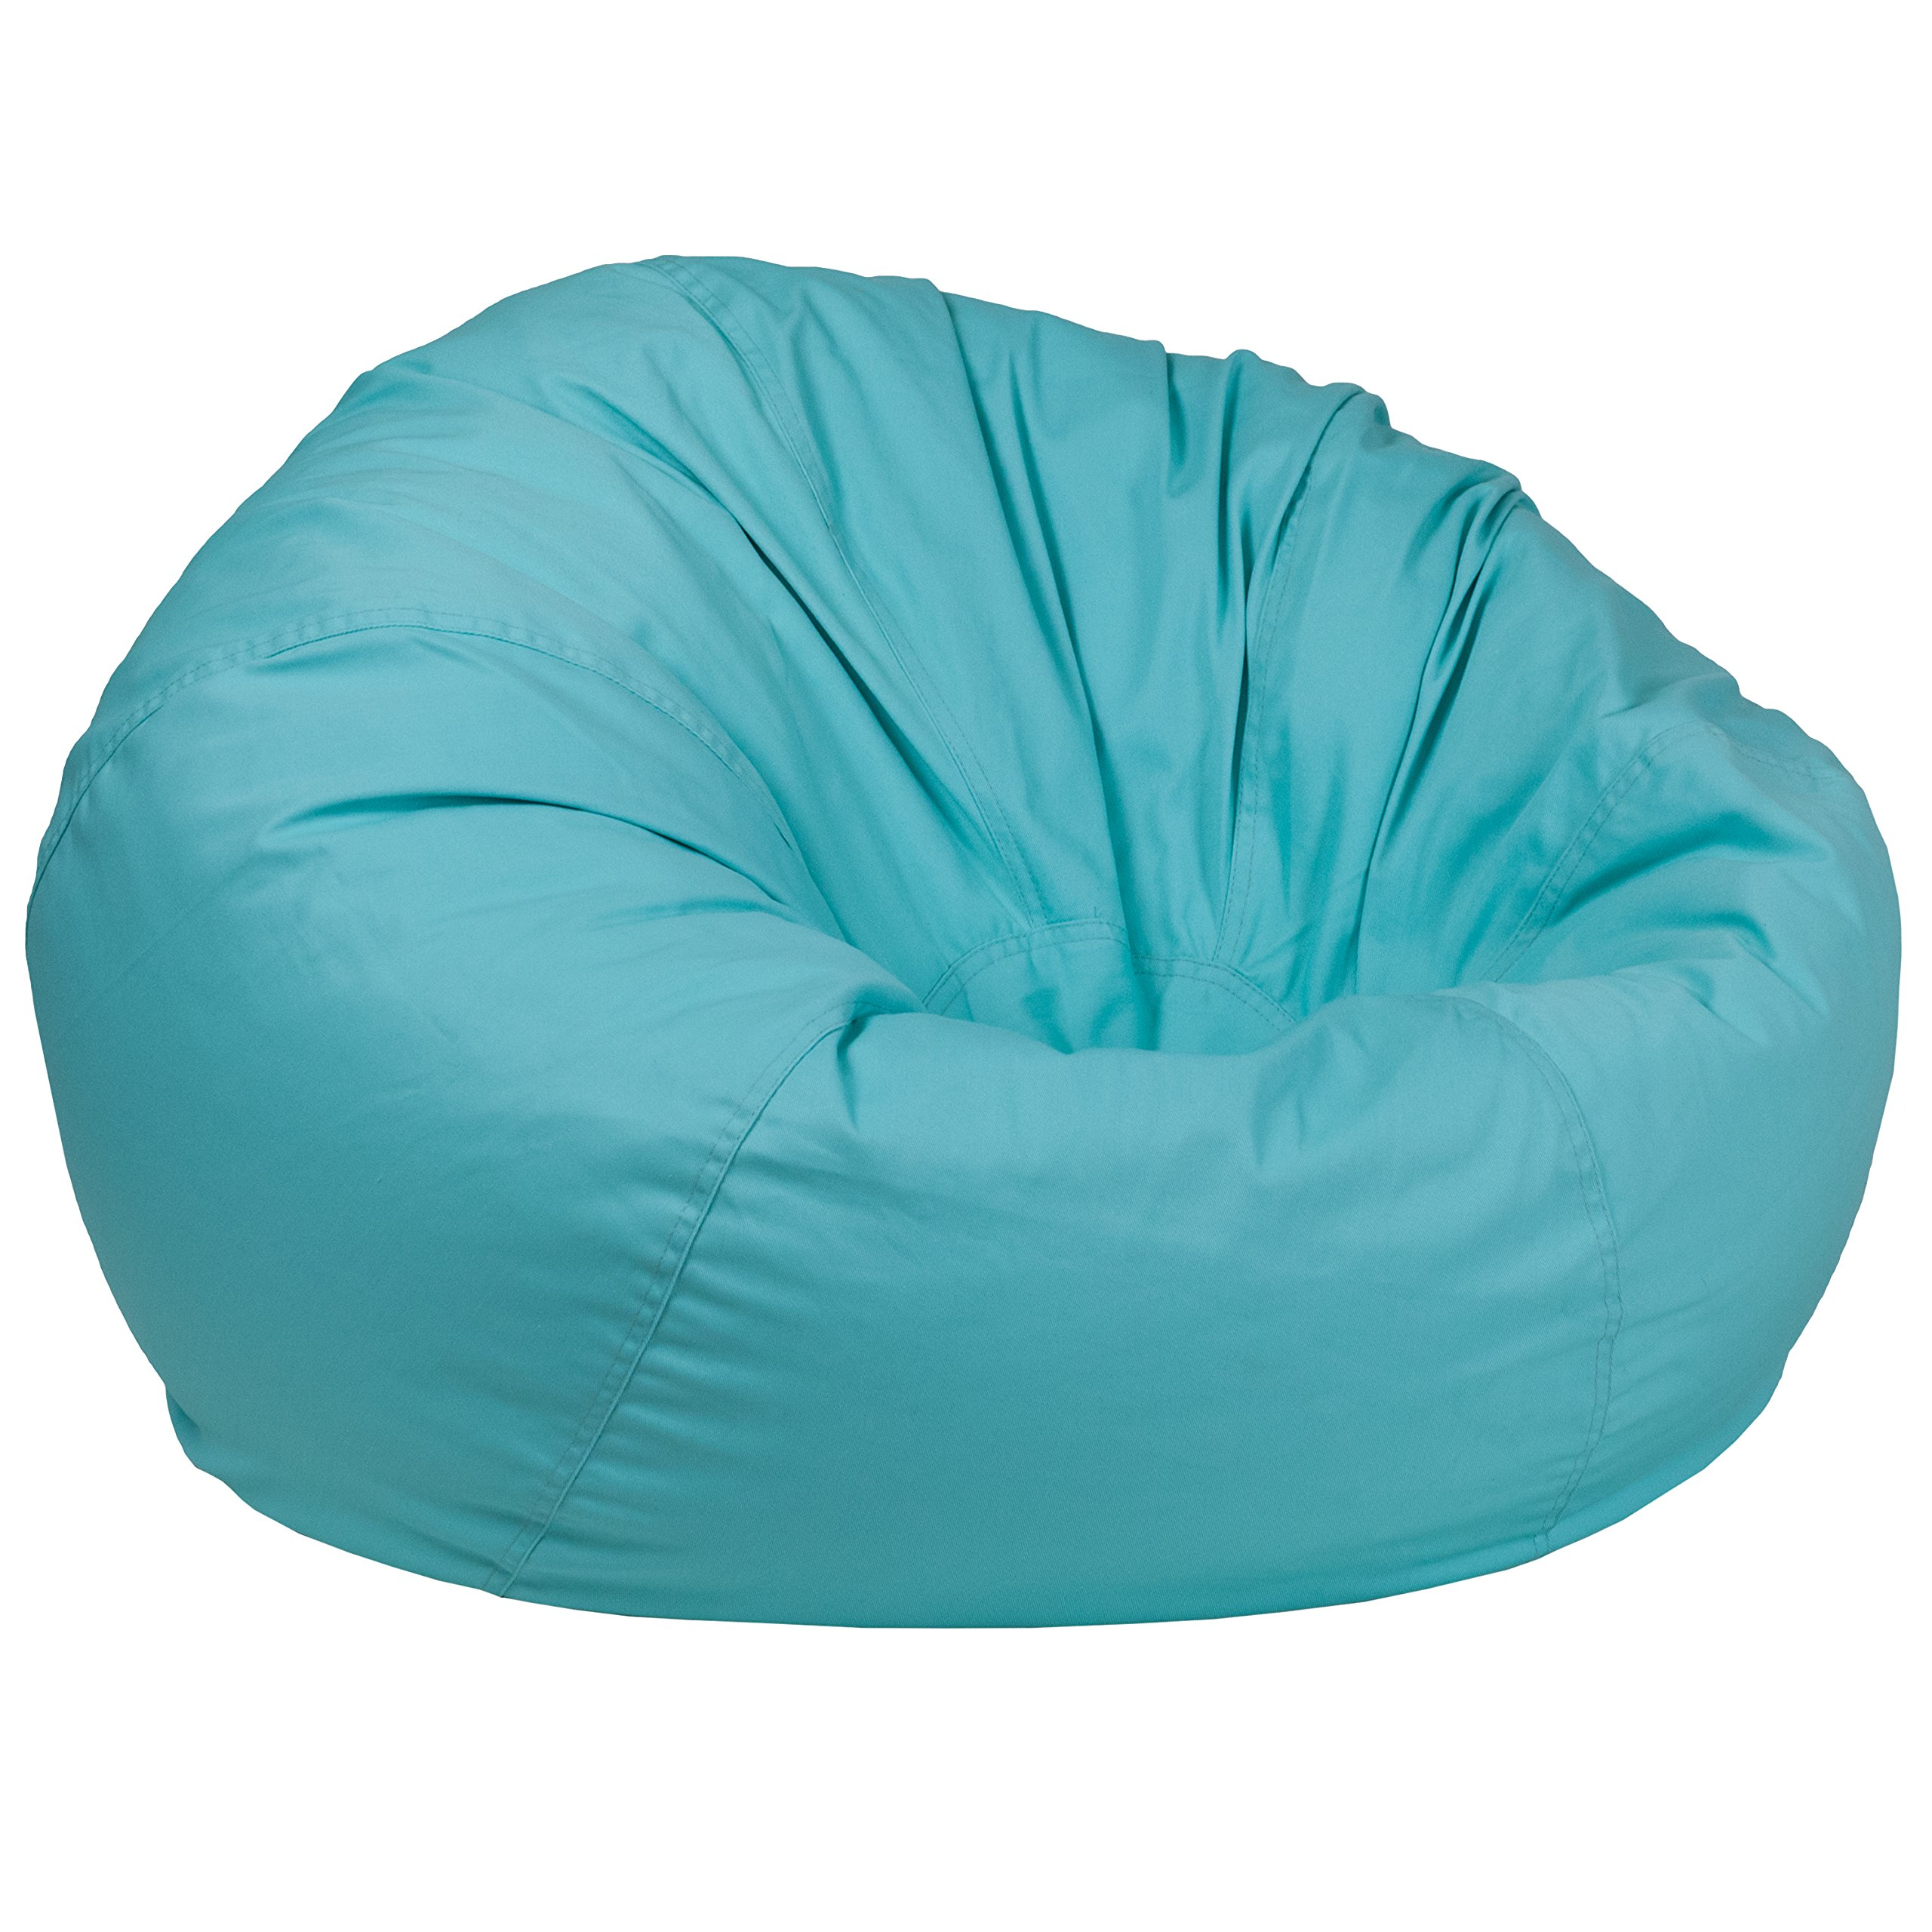 Flash Furniture Oversized Solid Mint Green Bean Bag Chair